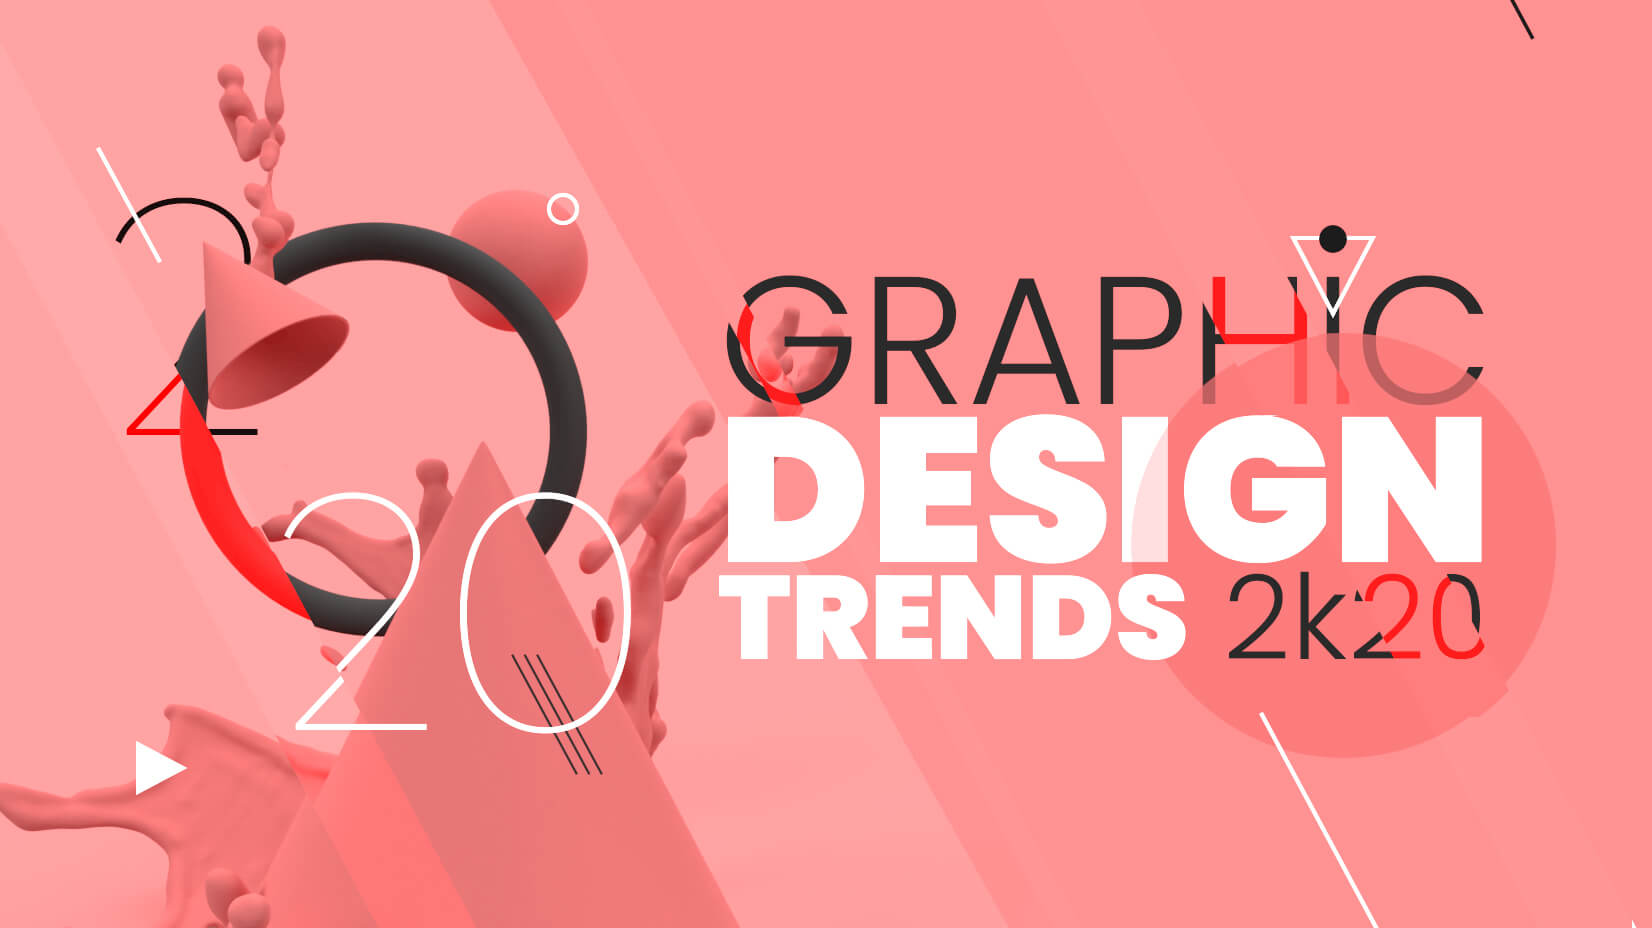 Christmas Graphic Design Trends 2020 Graphic Design Trends 2020: Breaking the Rules | GraphicMama Blog